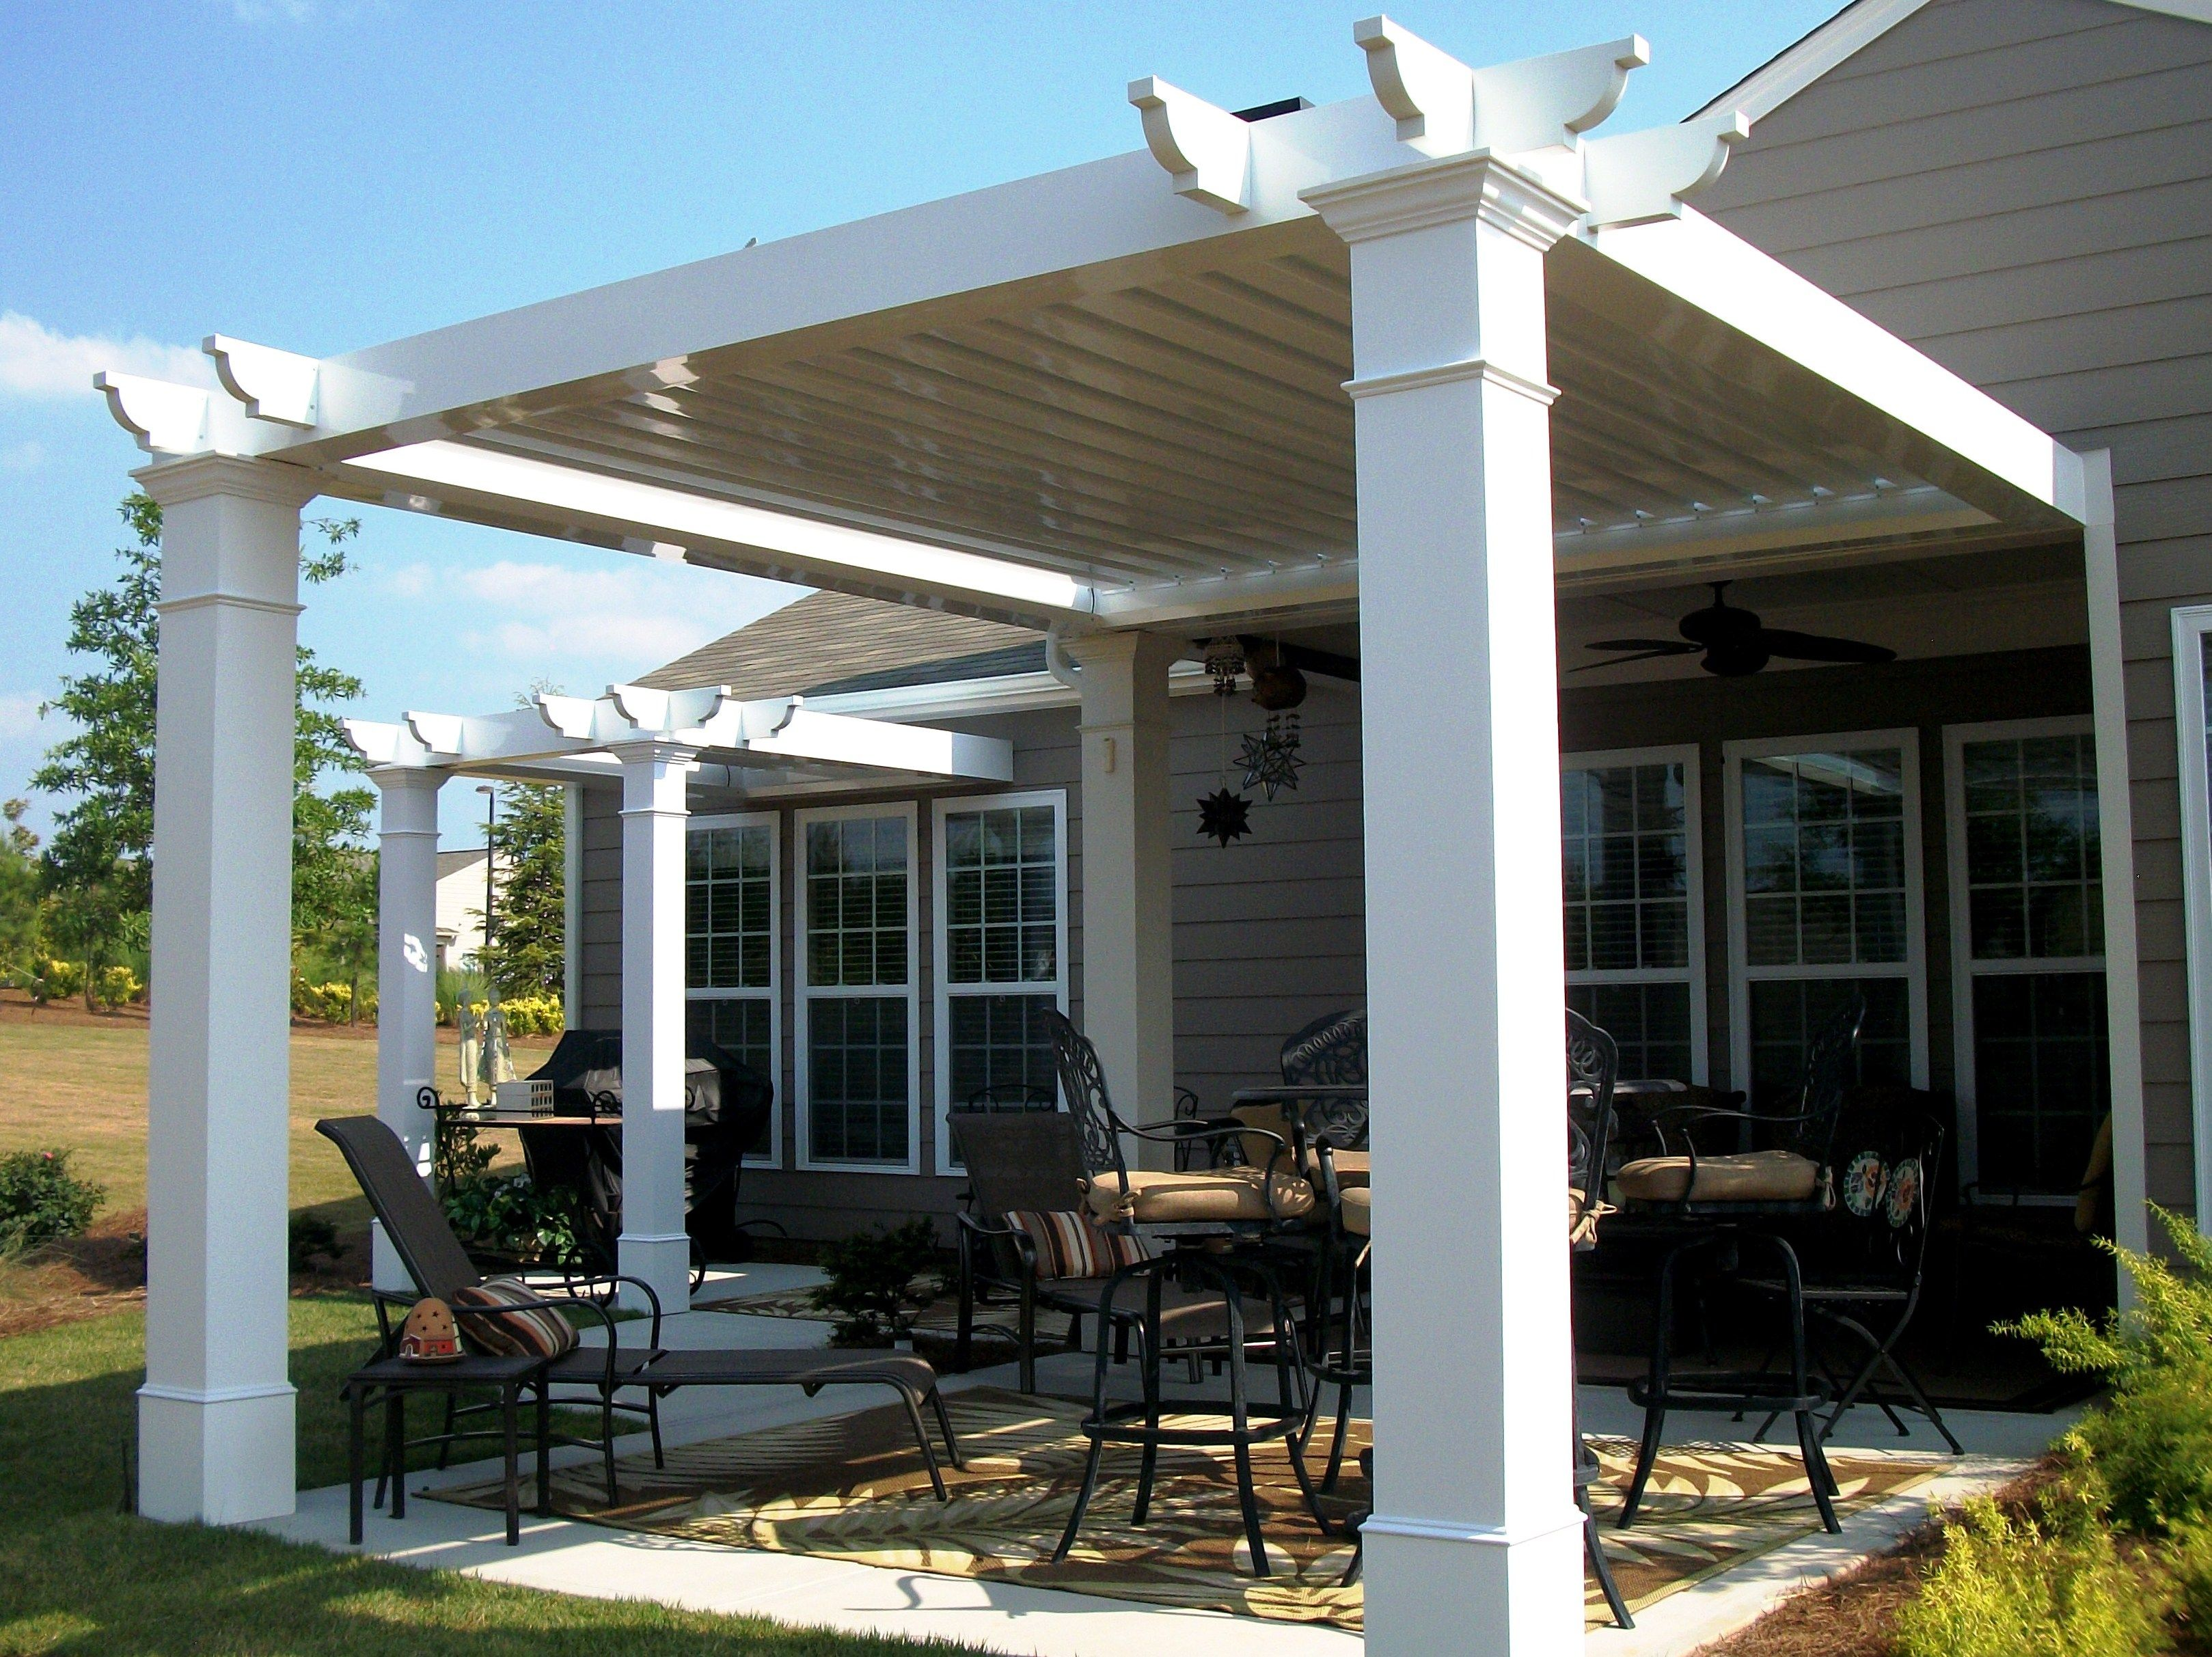 Pergola Modern Design modern simple pergola and gazebo design trends attached to house patio garden